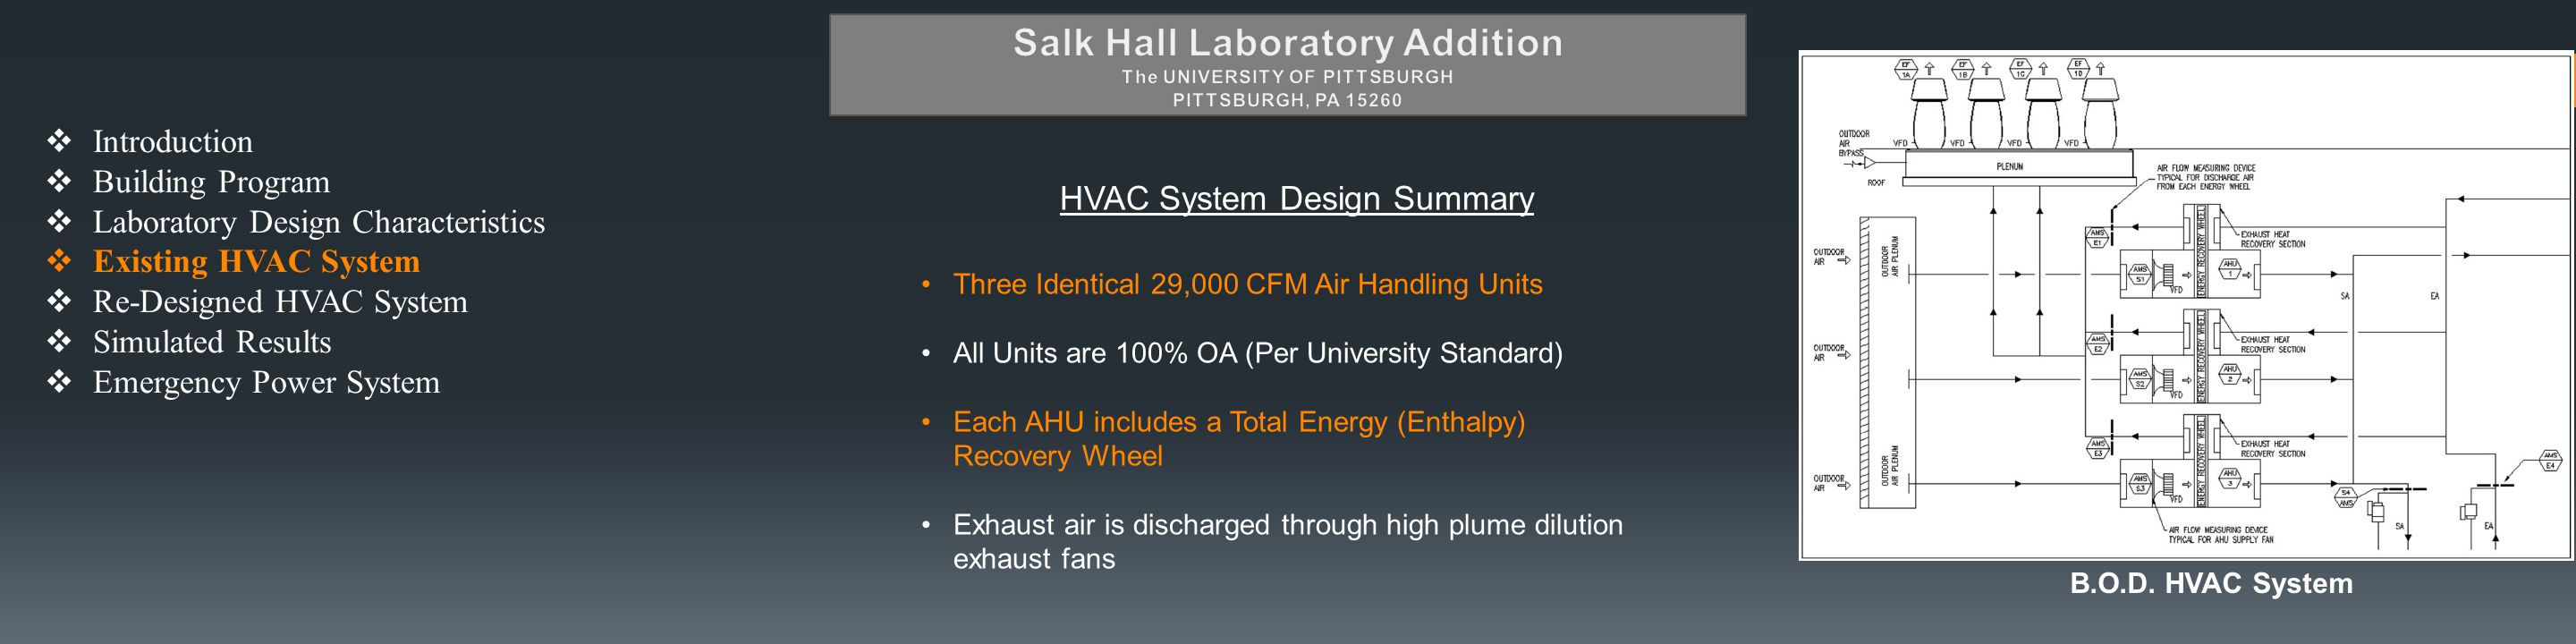  Introduction  Building Program  Laboratory Design Characteristics  Existing HVAC System  Re-Designed HVAC System  Simulated Results  Emergency Power System HVAC System Design Summary Three Identical 29,000 CFM Air Handling Units All Units are 100% OA (Per University Standard) Each AHU includes a Total Energy (Enthalpy) Recovery Wheel Exhaust air is discharged through high plume dilution exhaust fans B.O.D.